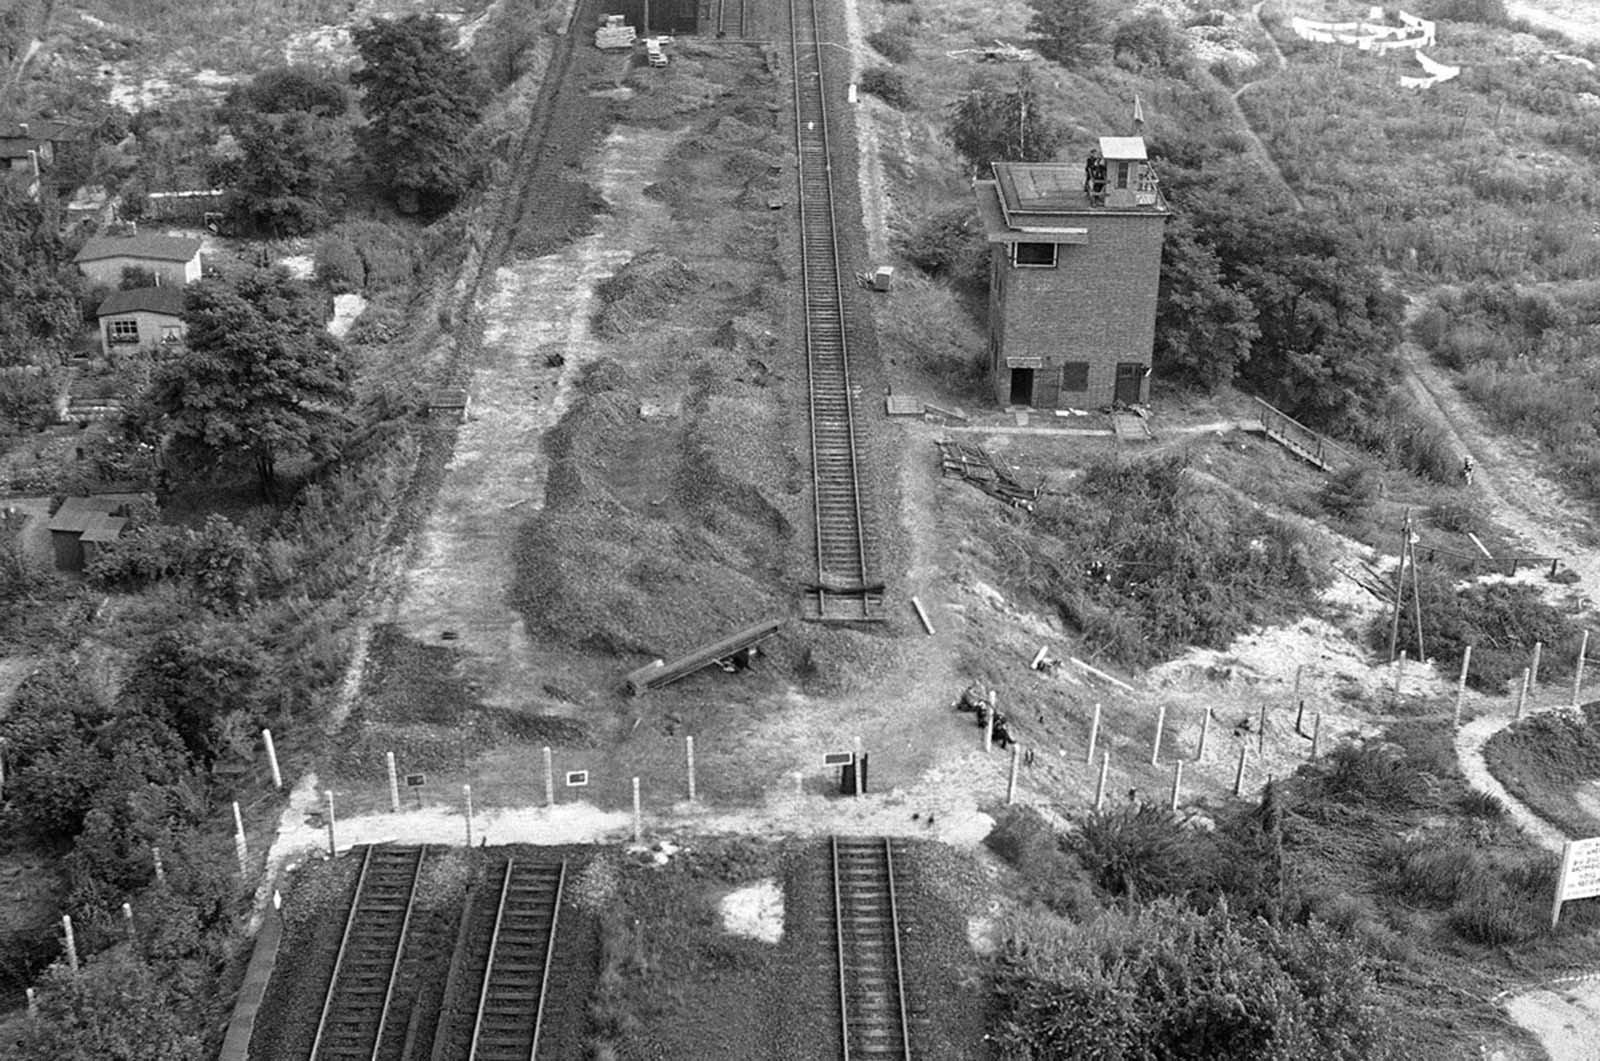 Tracks of the Berlin elevated railroad stop at the border of the American sector of Berlin in this air view on August 26, 1961. Beyond the fence, the Communist-ruled East Berlin side, the tracks have been removed.